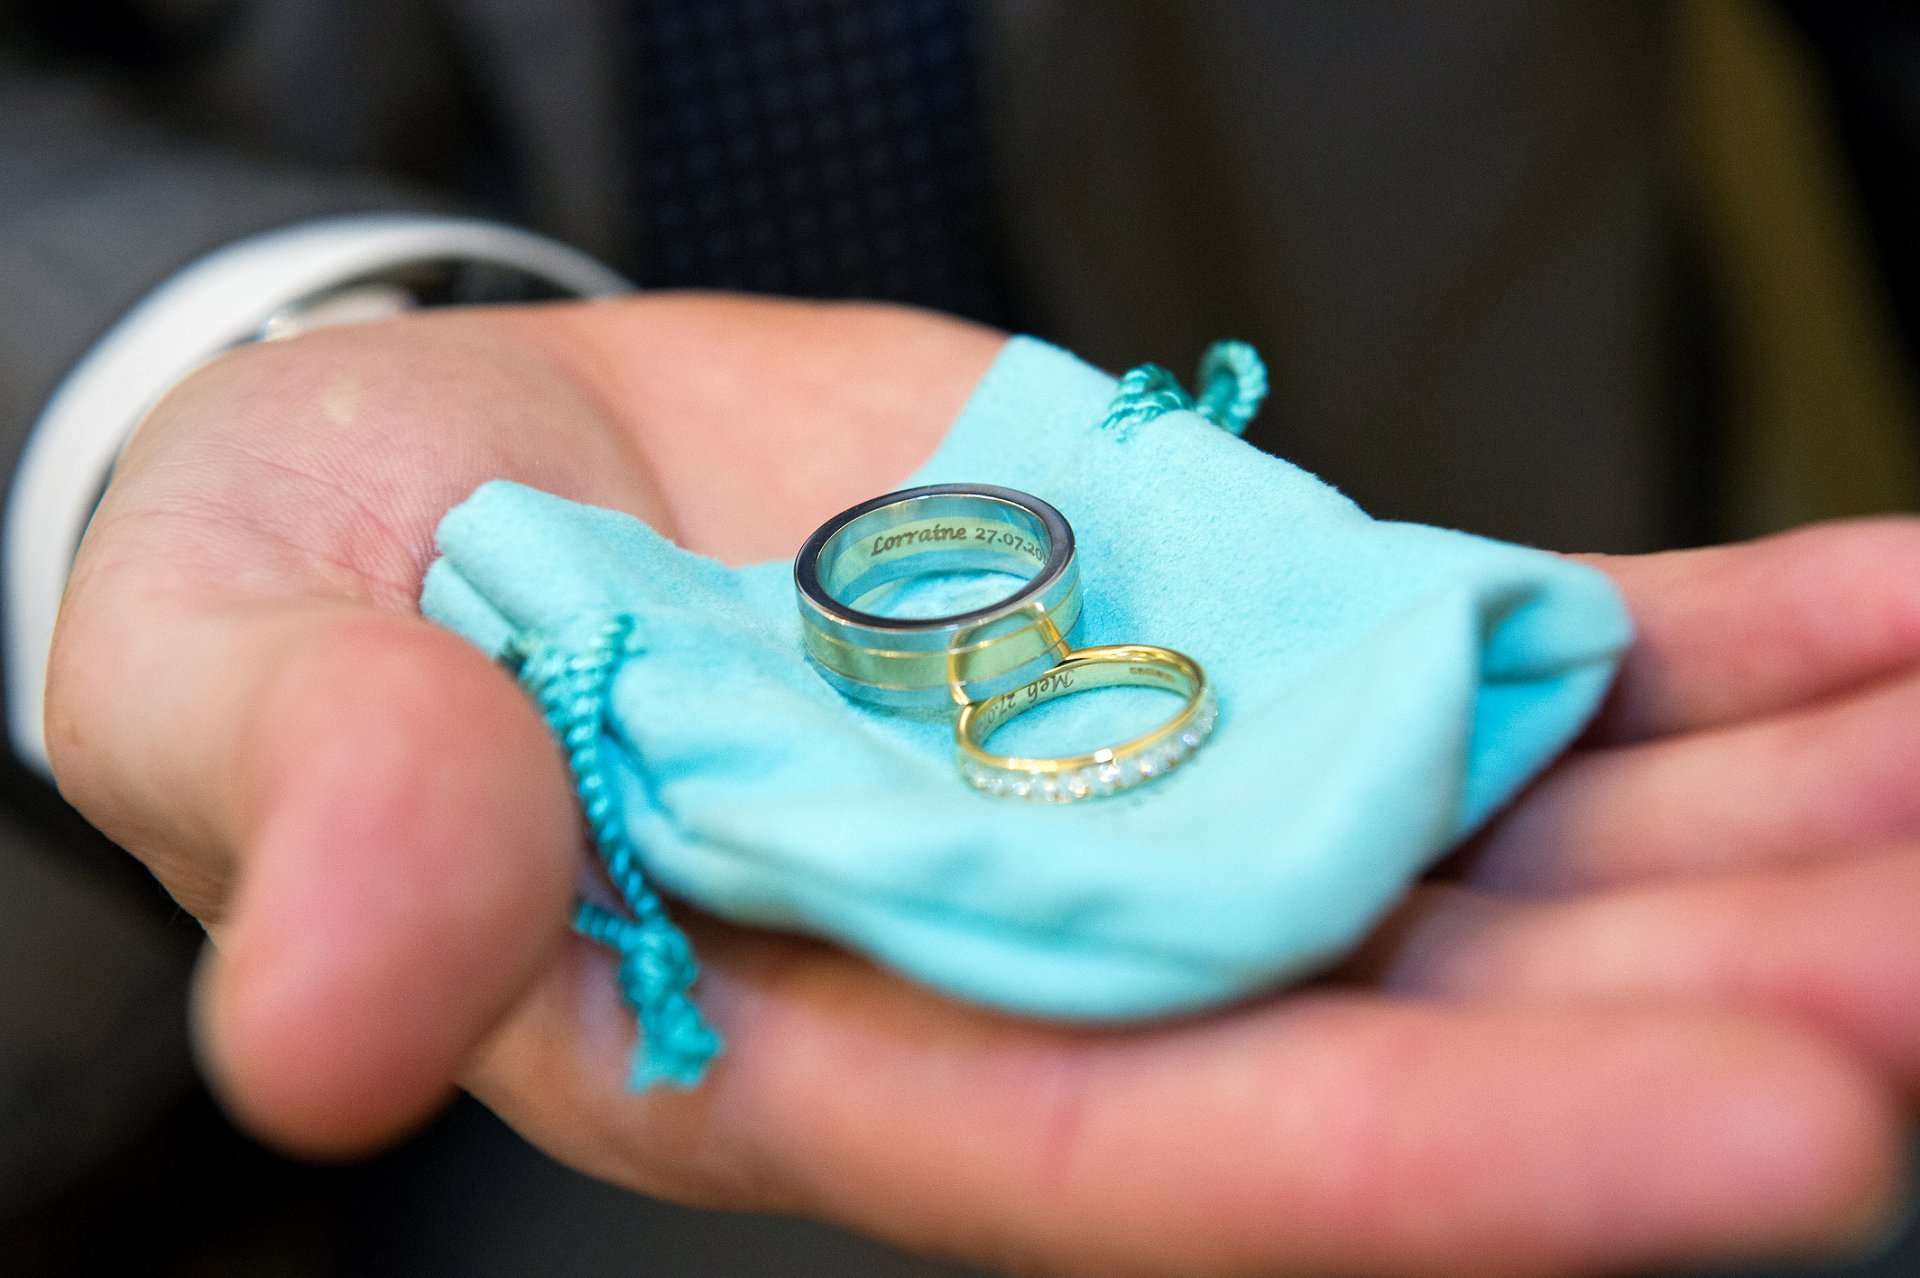 registry office wedding photographer Emma Duggan works at register offices througout London and the South East with coverage from as little as one hour tiffany wedding bands for this chelsea civil wedding ceremony